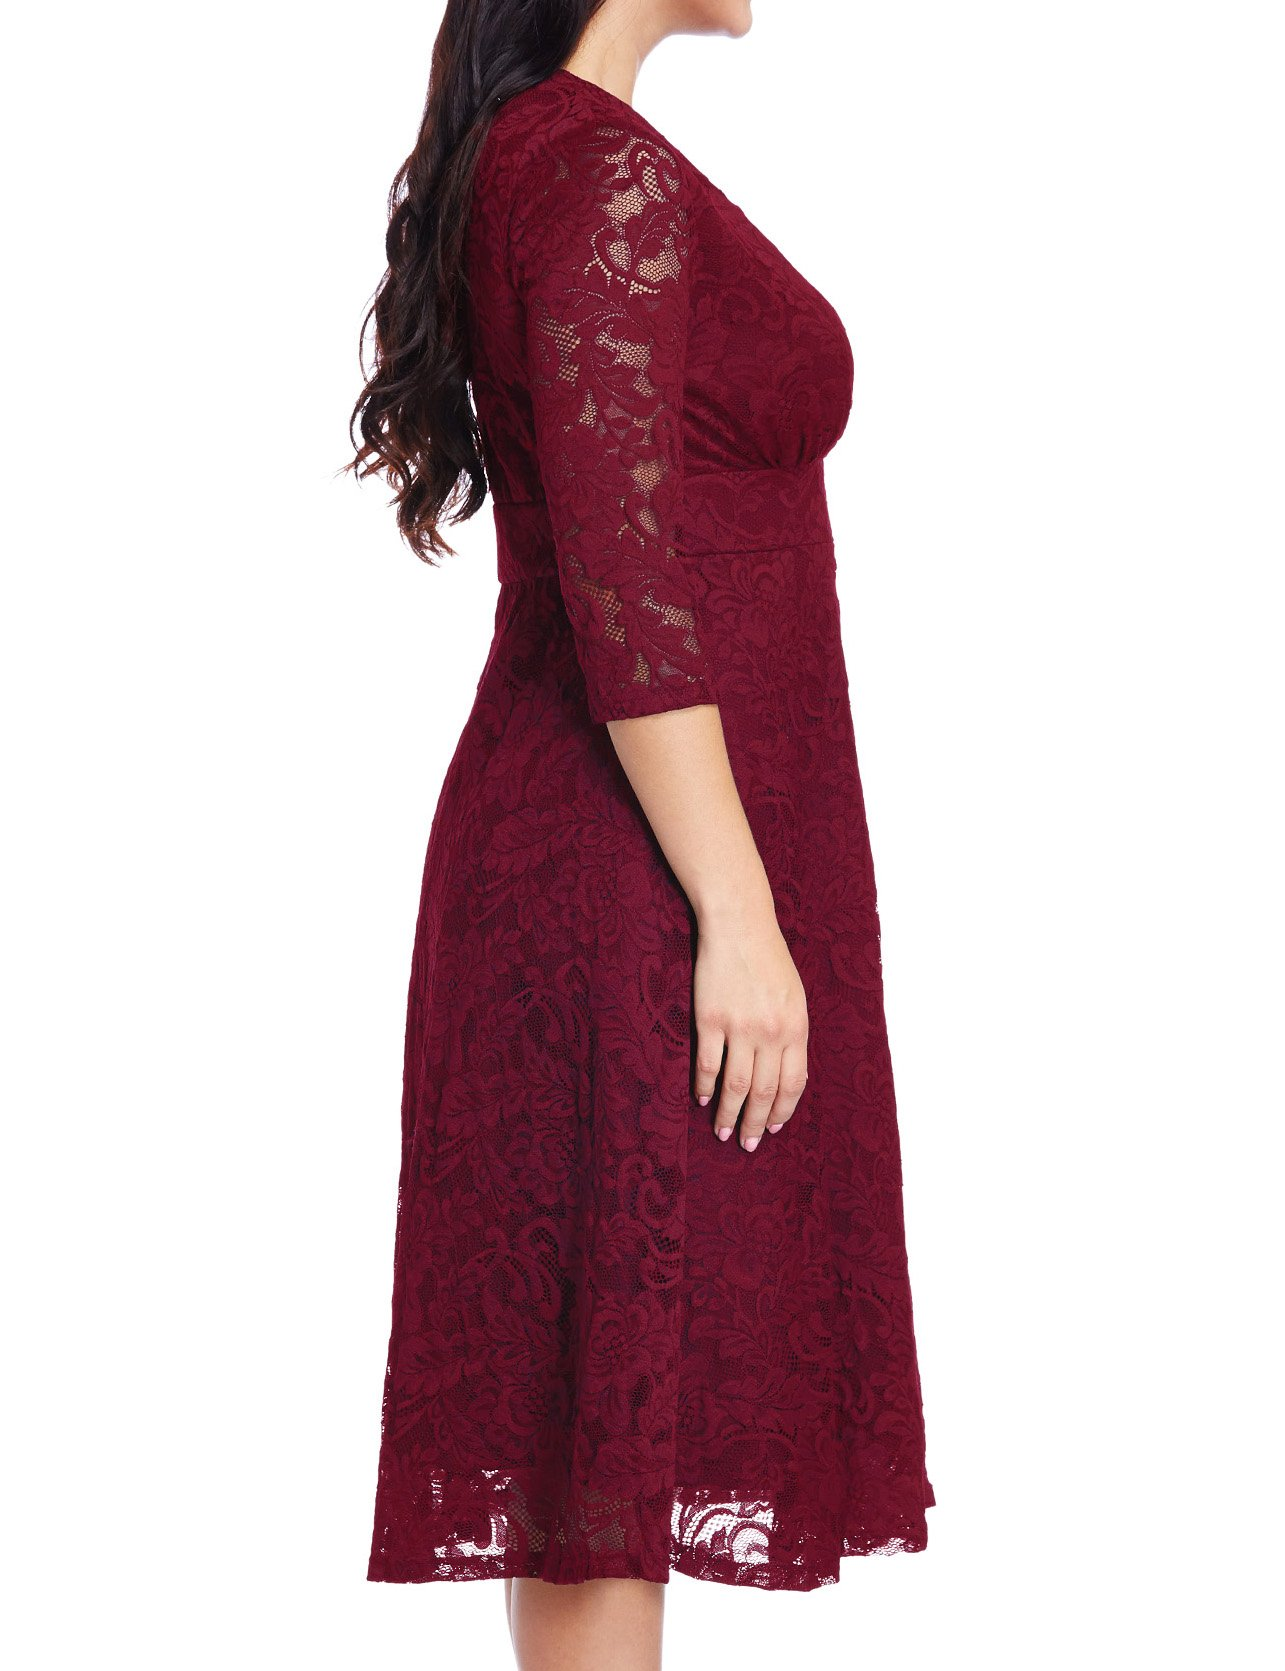 GRAPENT Women's Lace Plus Size Mother Of The Bride Skater Dress Bridal Wedding Party Maroon 16W by GRAPENT (Image #4)